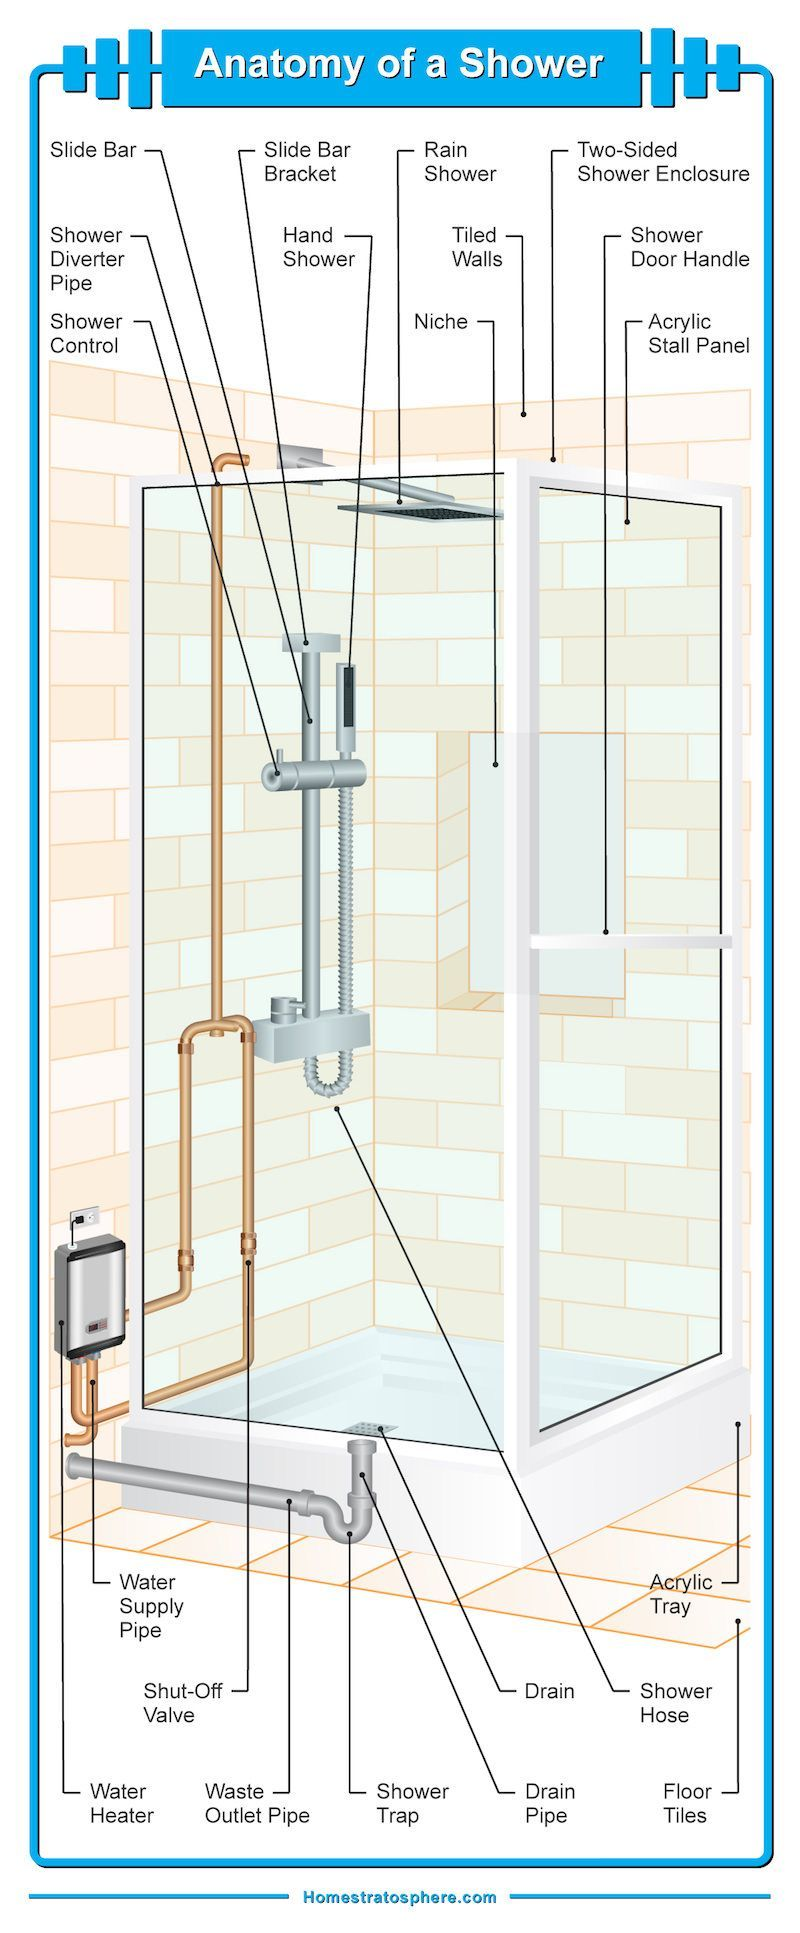 Diagram Illustrating The Many Different Parts Of A Bathroom Shower Shower Bathroom Shower Plumbing Bathroom Shower Shower Stall